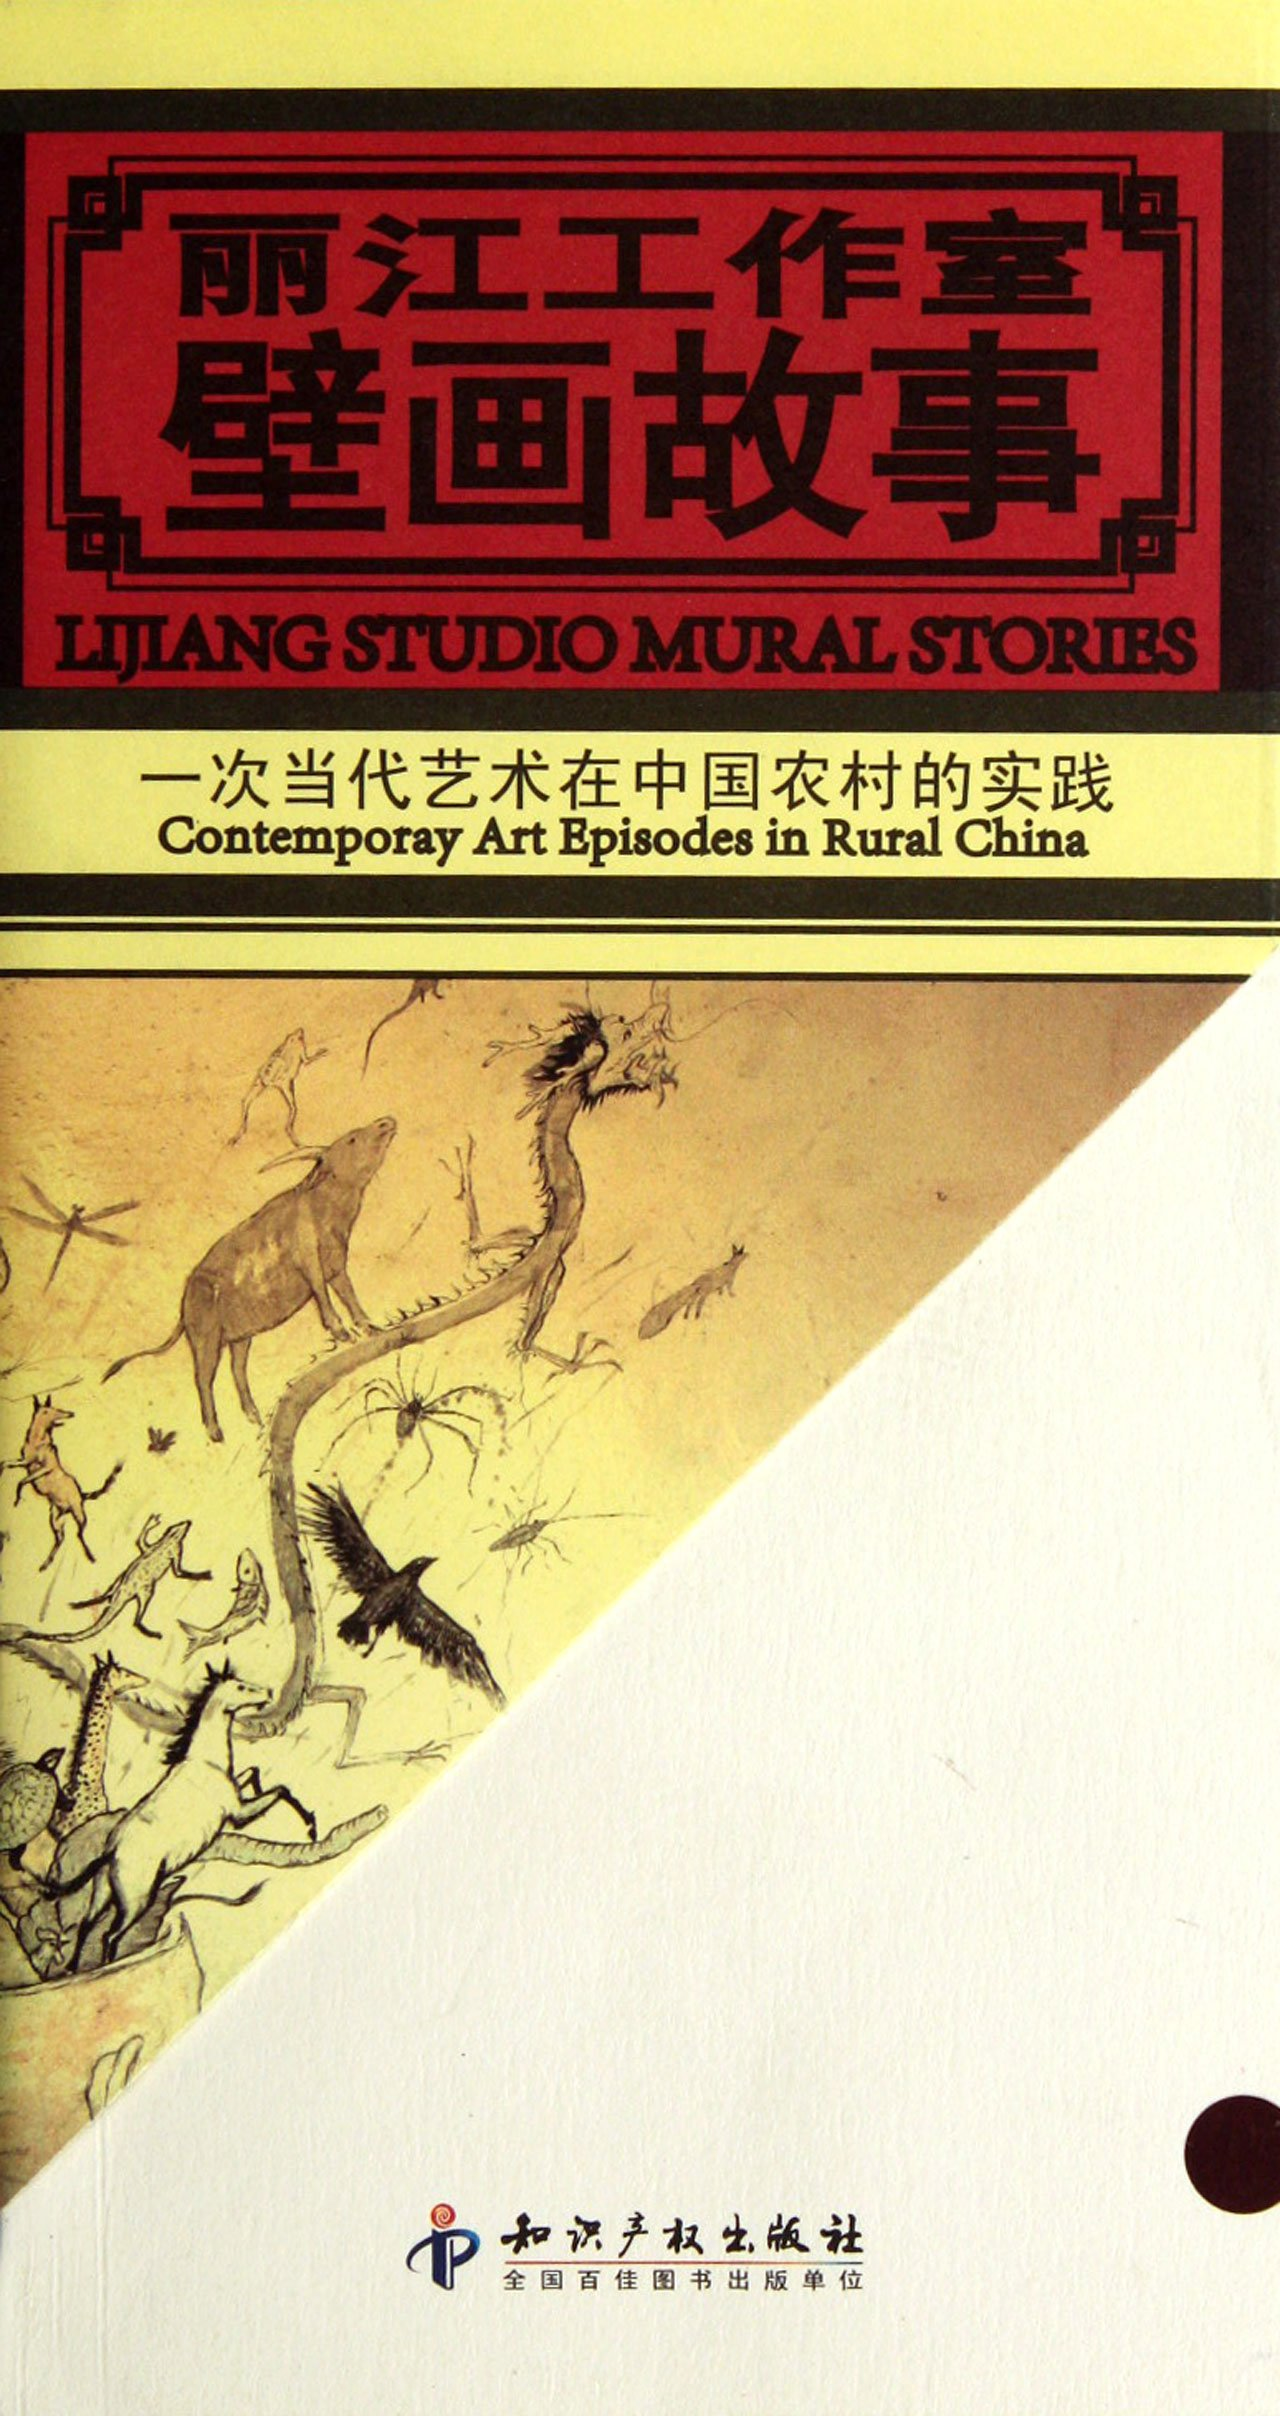 The Creation of Frescos in Lijiang Studio-A Practice of Contemporary Art  in Chinese Rural Area (Chinese Edition) pdf